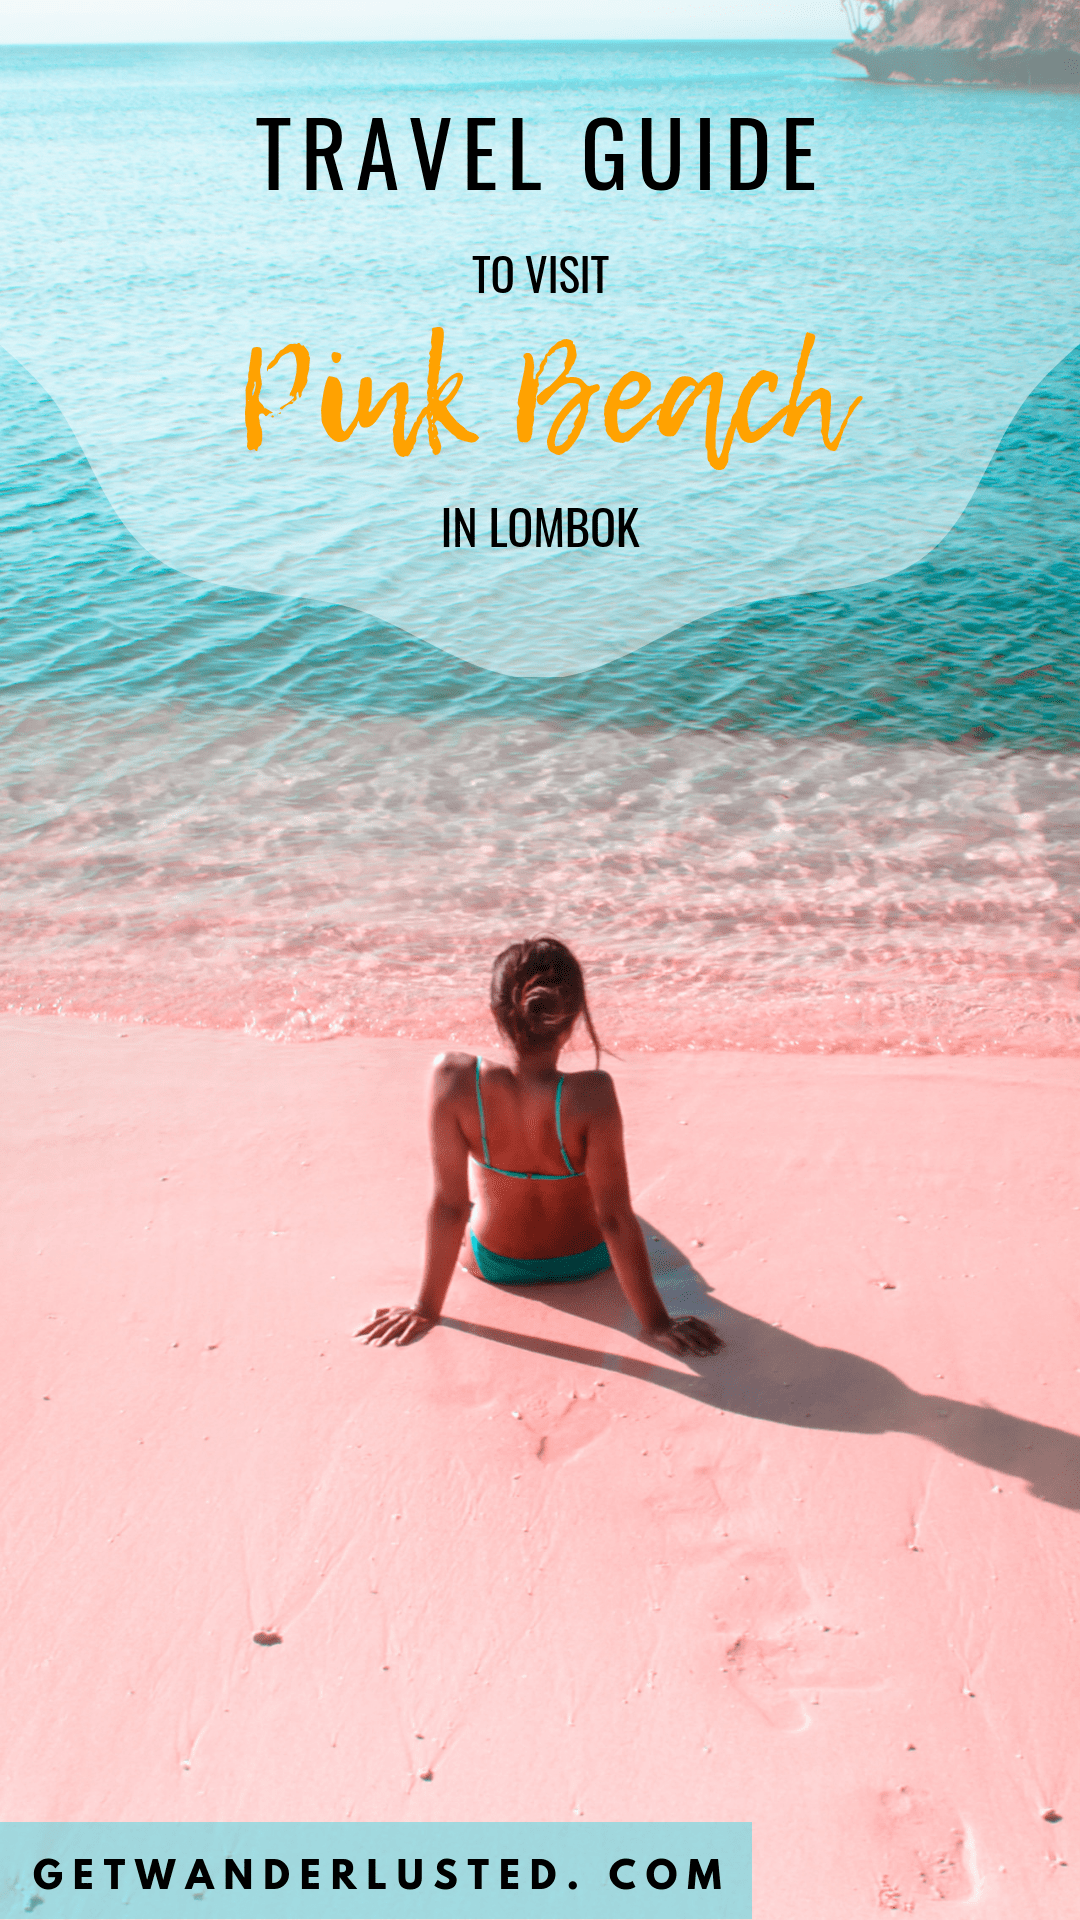 Travel Guide to Visit Pink Beach in Lombok